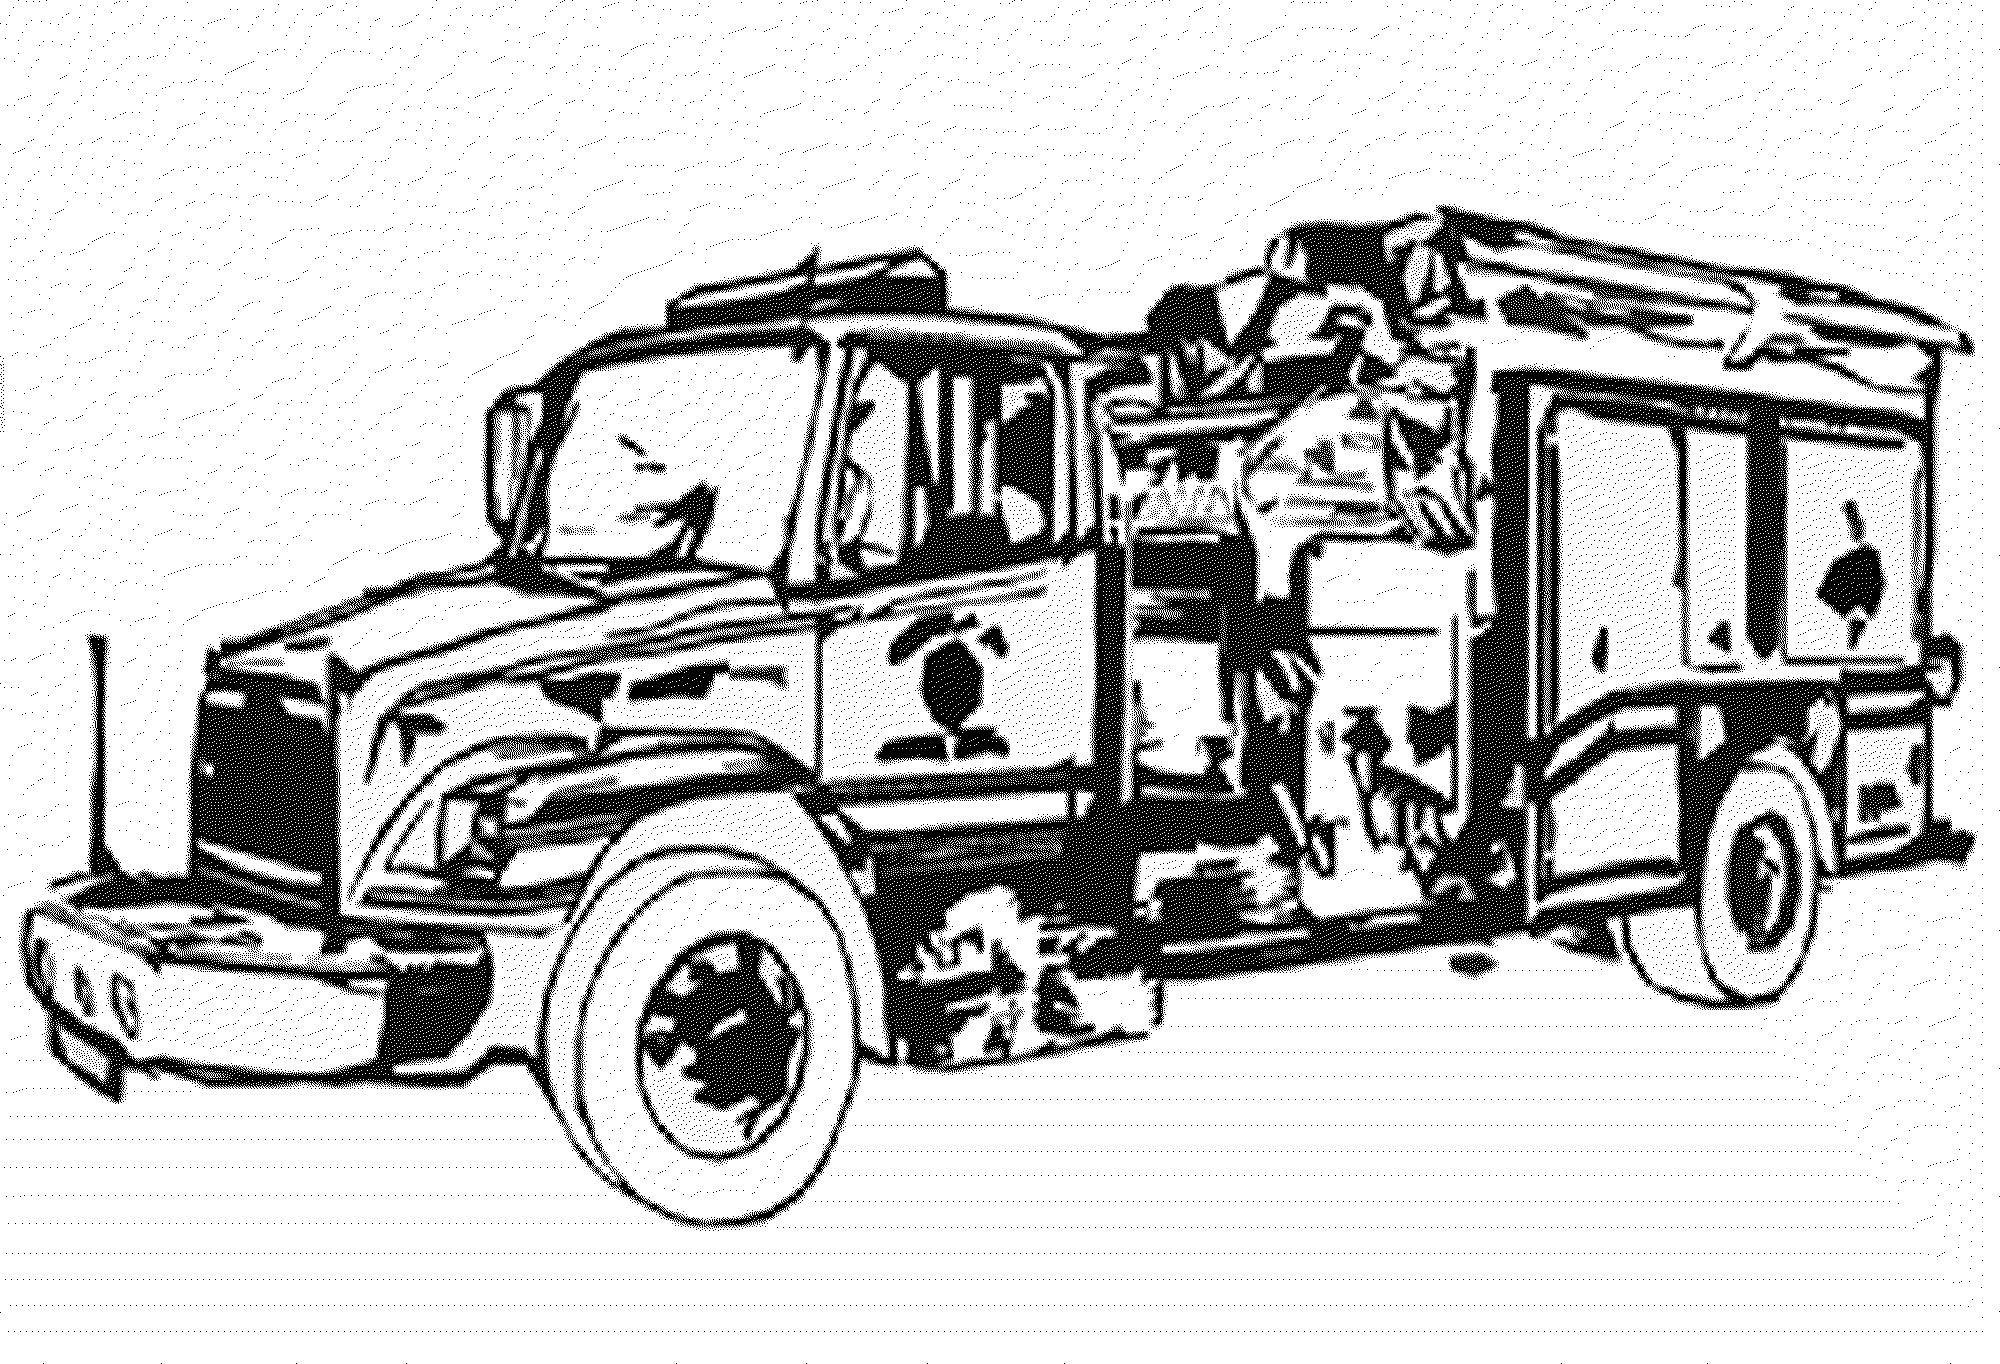 fire truck coloring pictures fdny fire truck coloring pages free printable enjoy pictures fire coloring truck